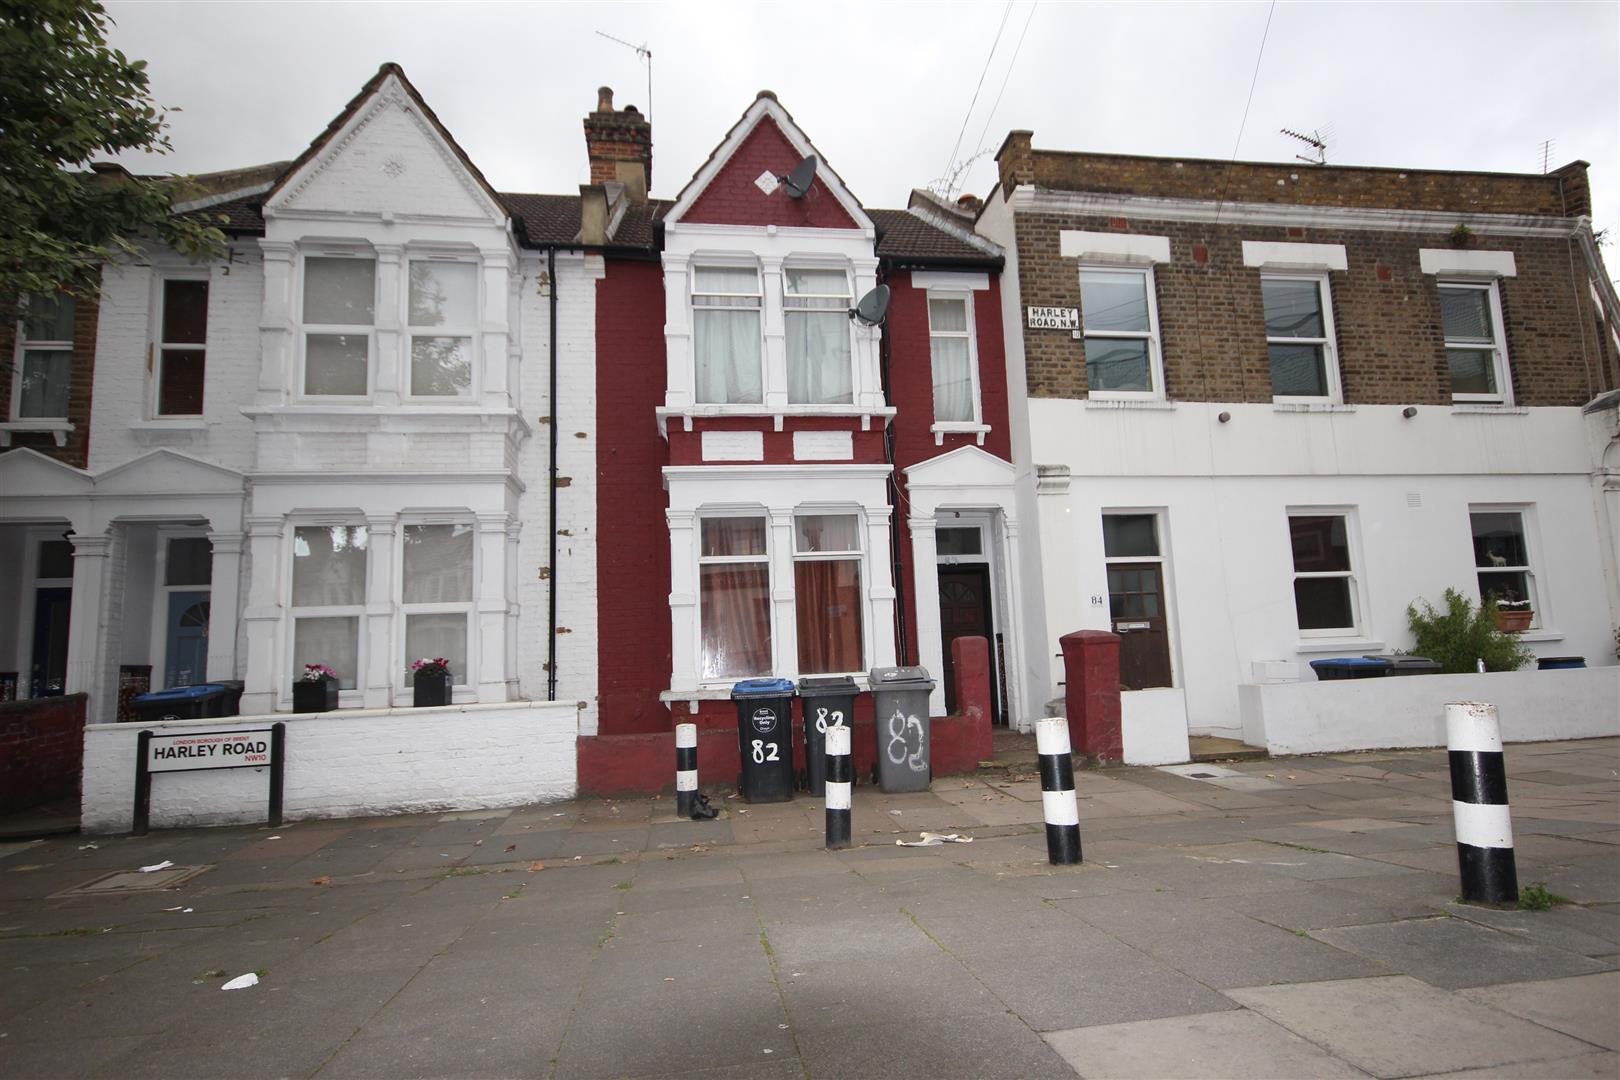 6 Bedrooms House for sale in Harley Road, London